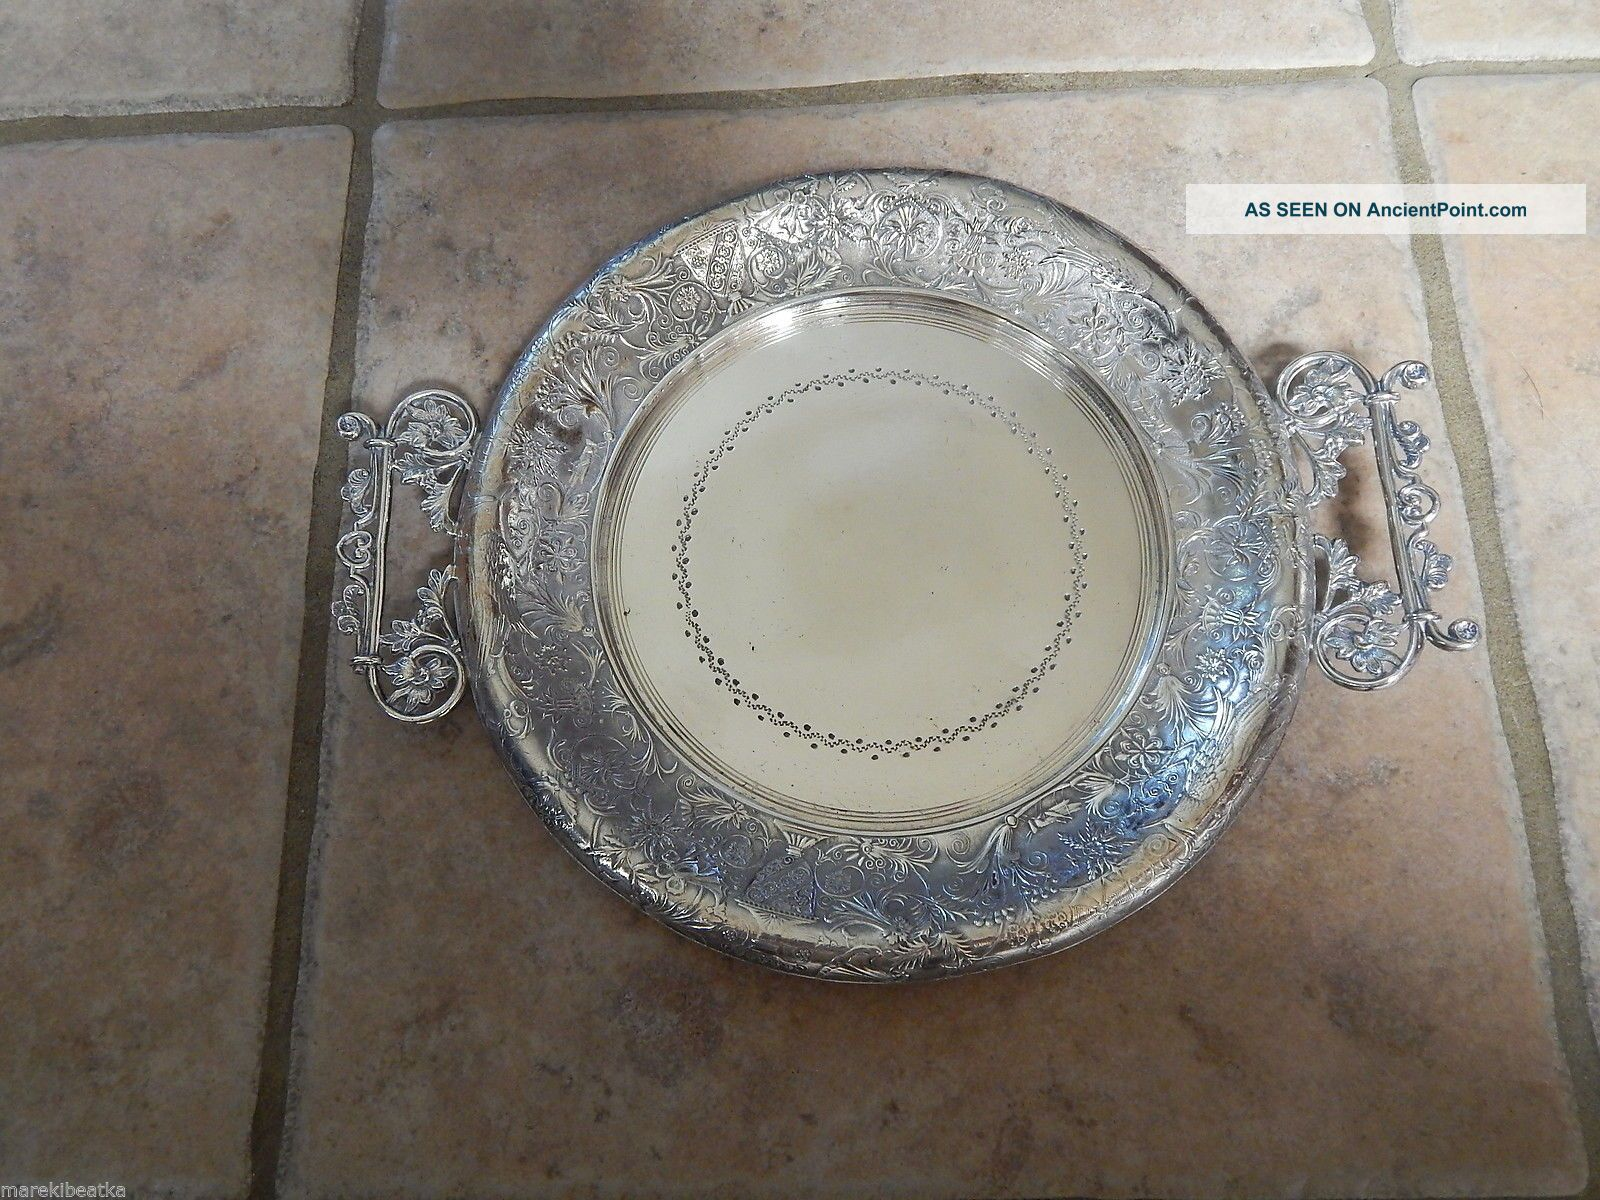 Antique Rockford Quadruple Silver Plate Ornate Tray With Handle Platters & Trays photo